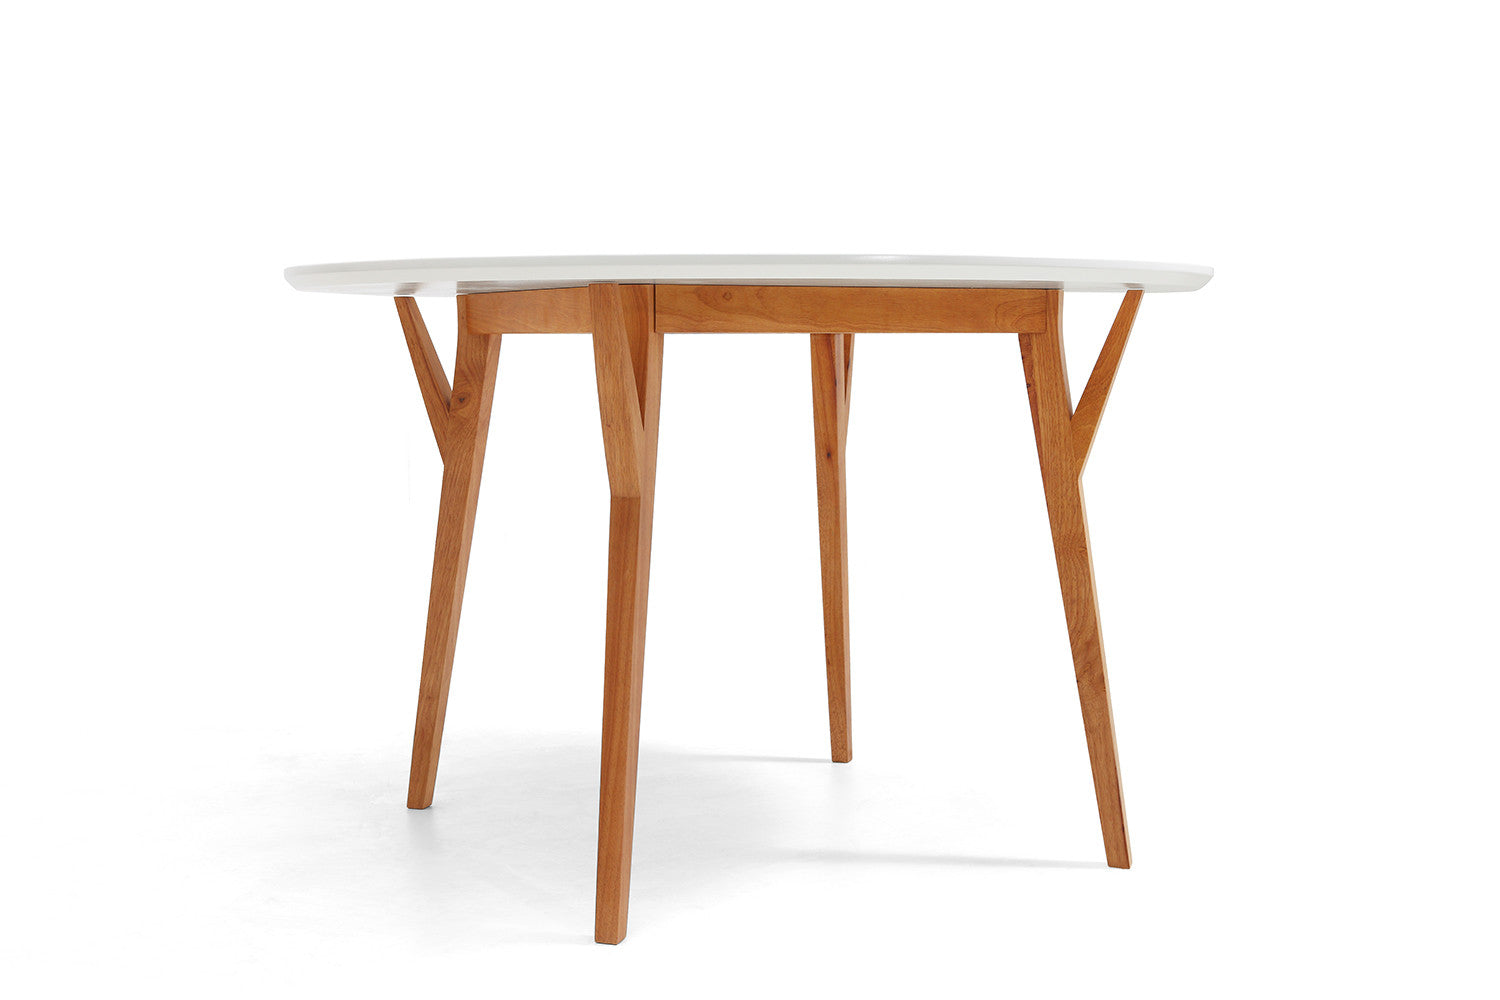 Table de salle manger ronde design scandinave moesa for Table de salle a manger dimension